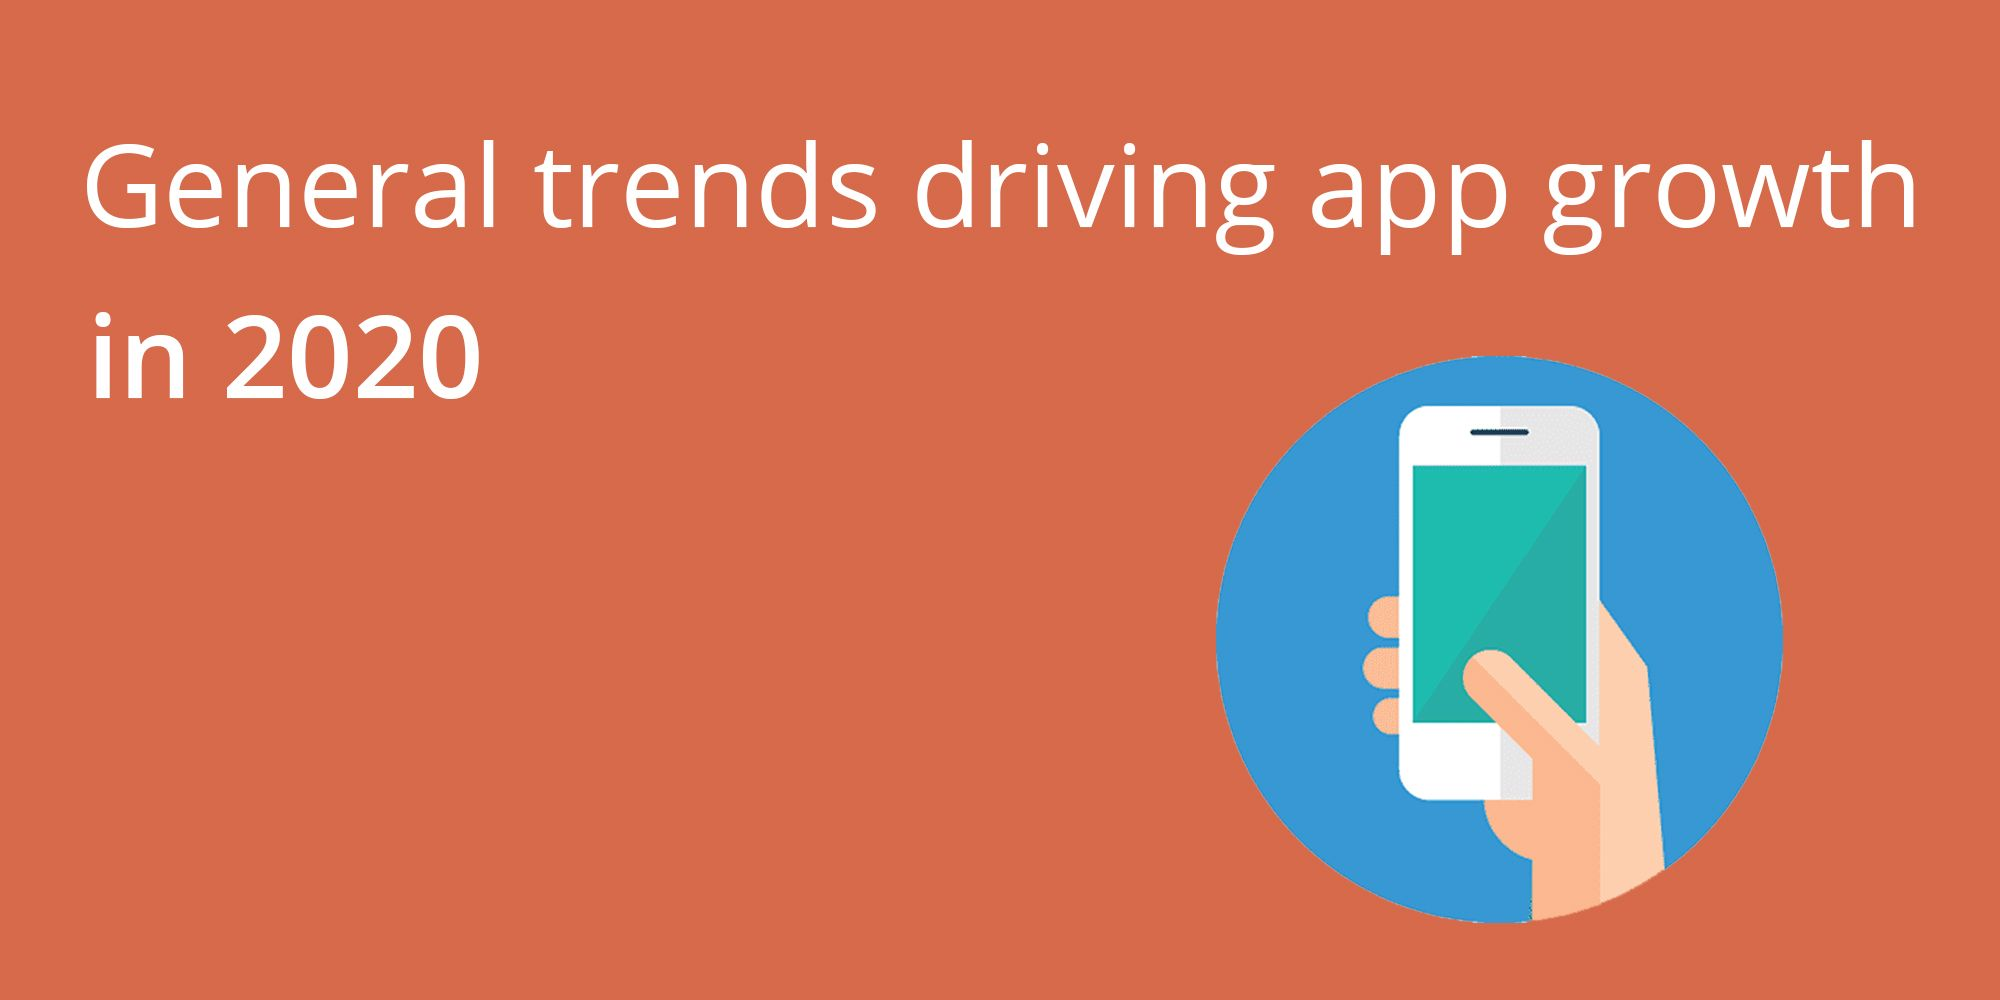 General trends driving app growth in 2020